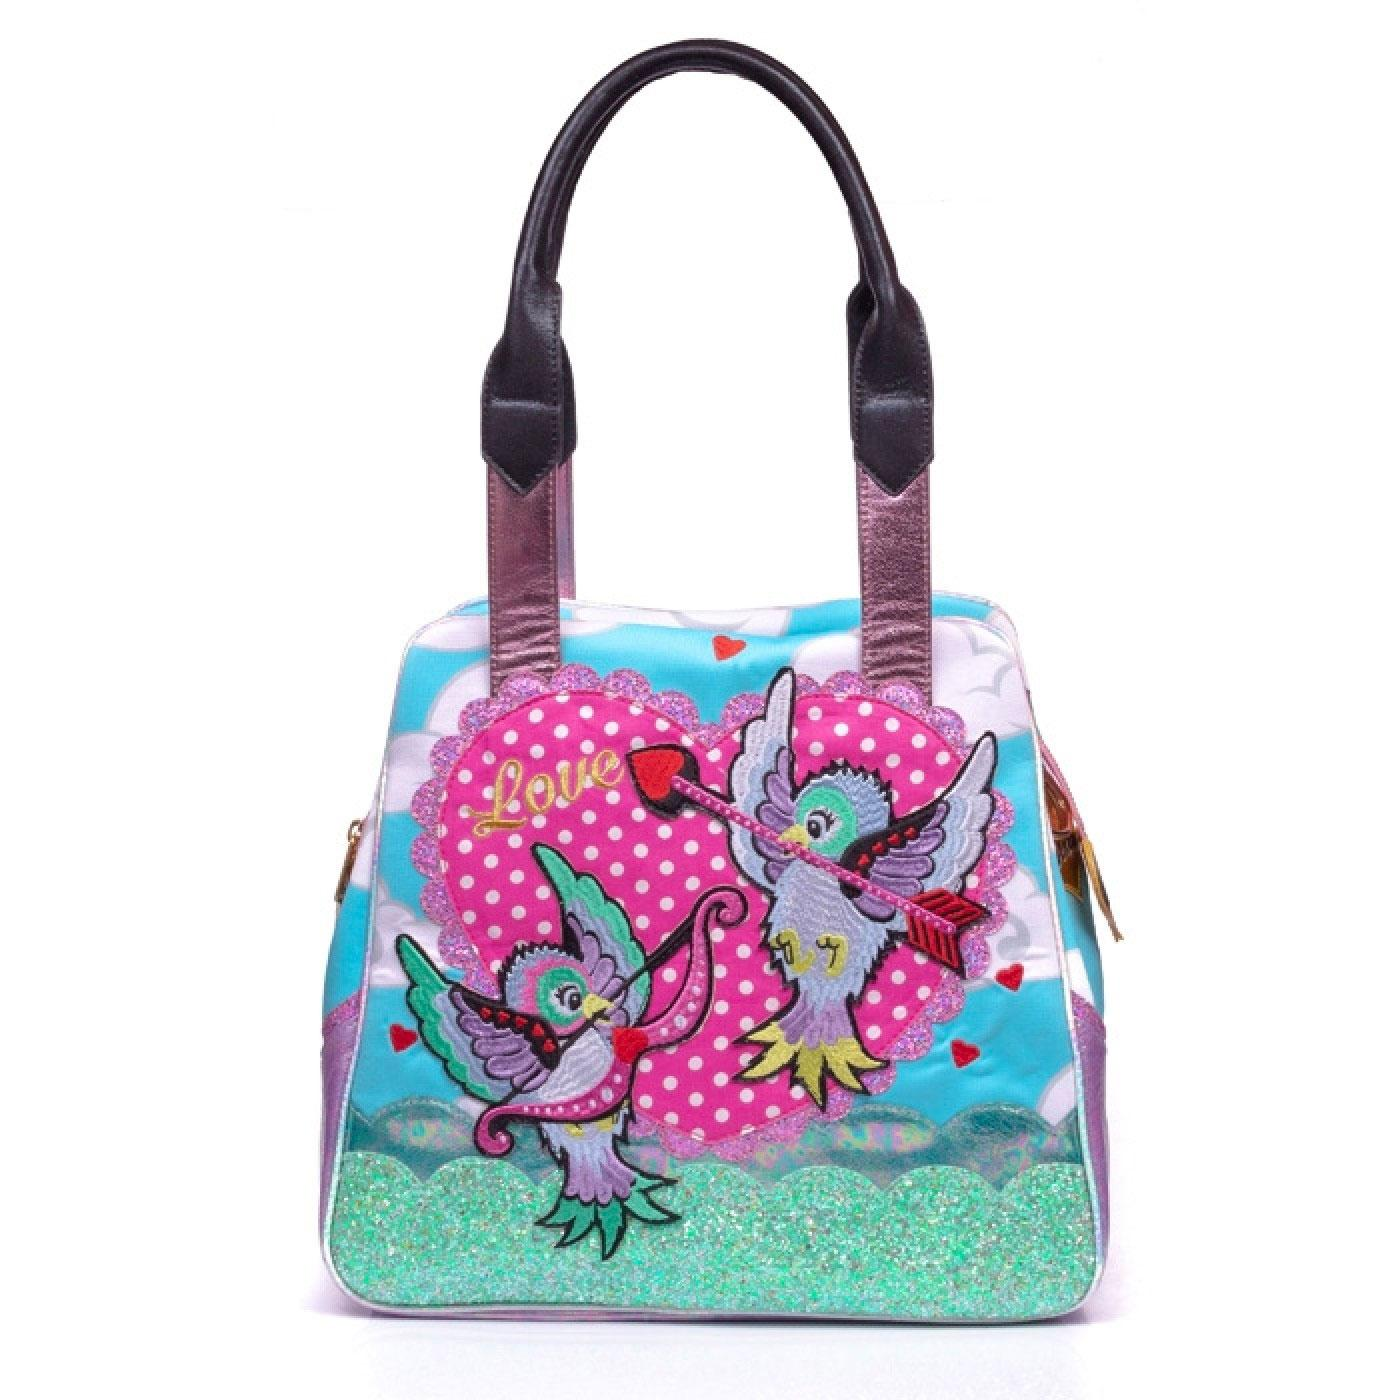 CUPID IRREGULAR CHOICE VINTAGE 50S BIRD BAG BLUE